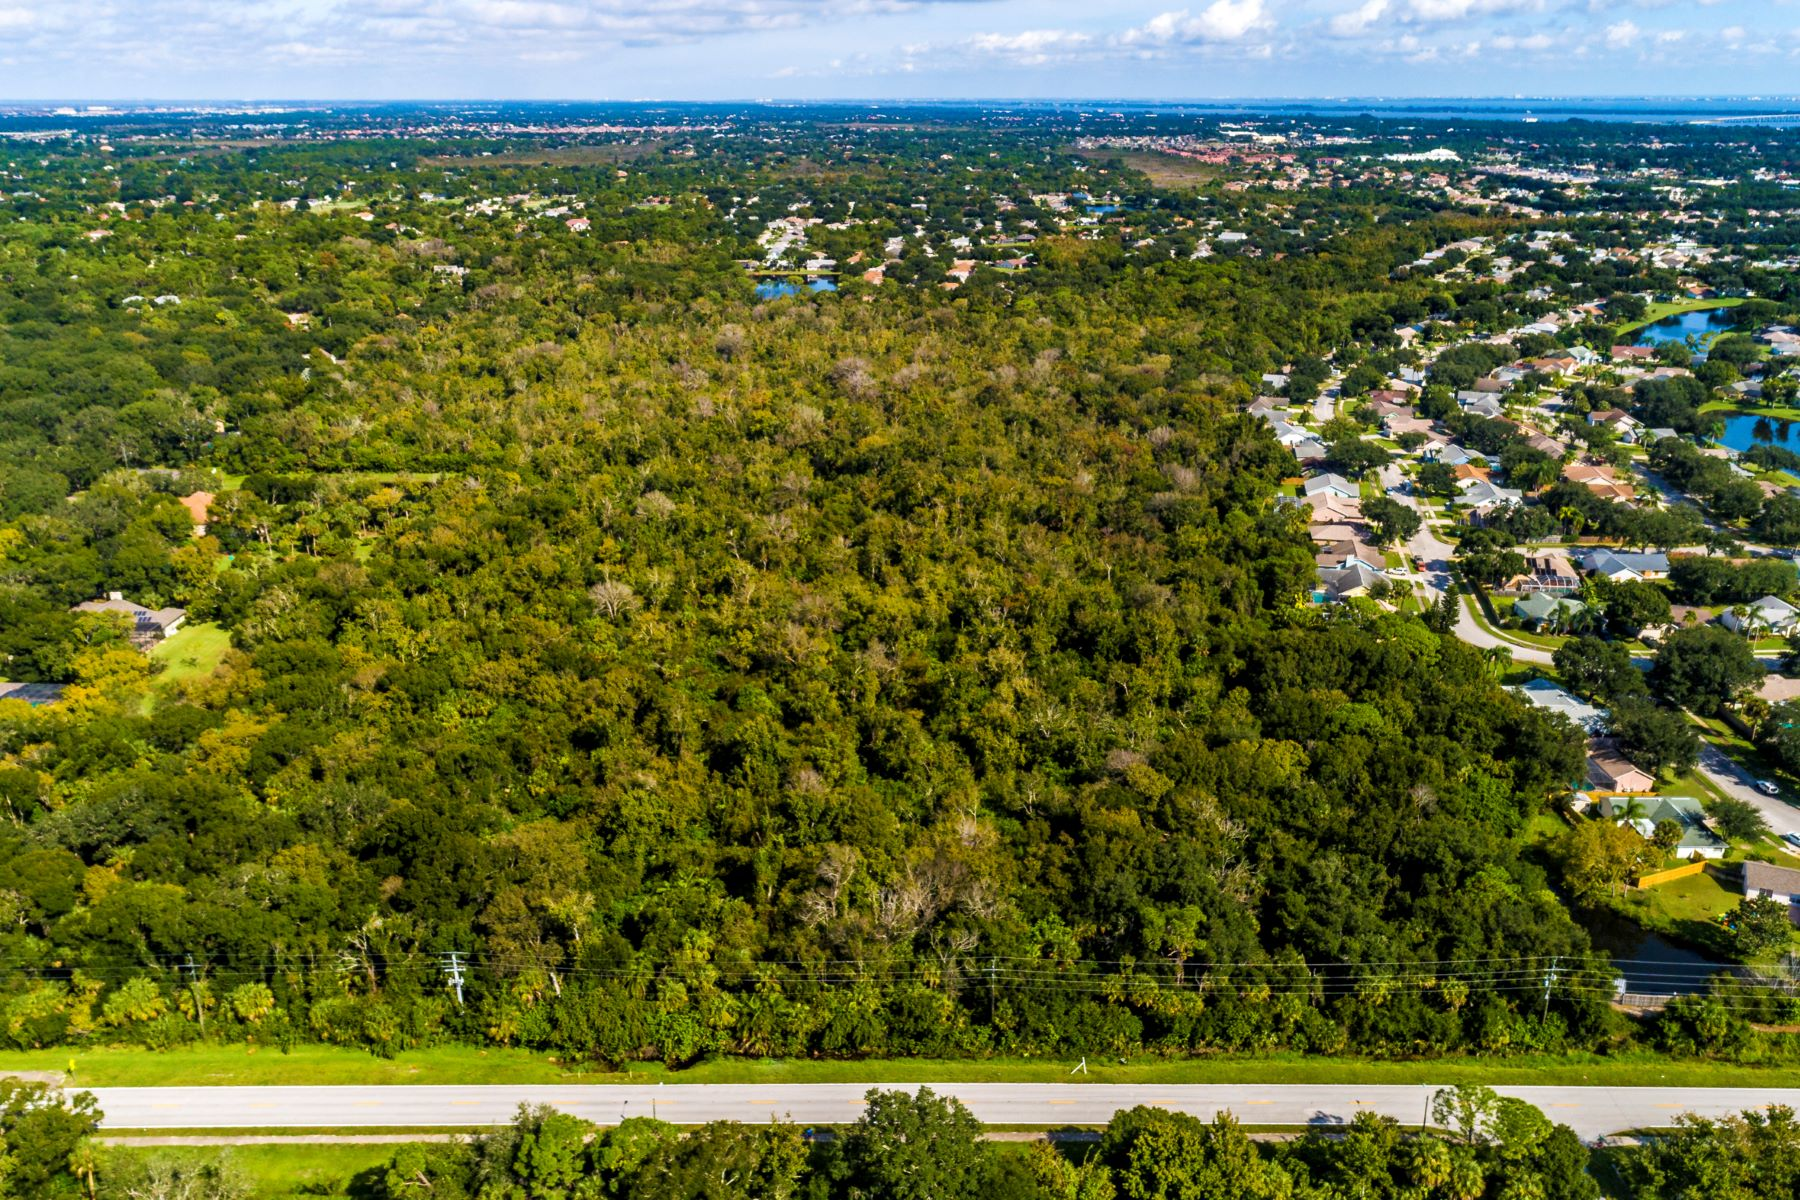 Property for Sale at Thirty Nine Acres in Desireable Location in Melbourne 0000 Parkway Drive Melbourne, Florida 32934 United States